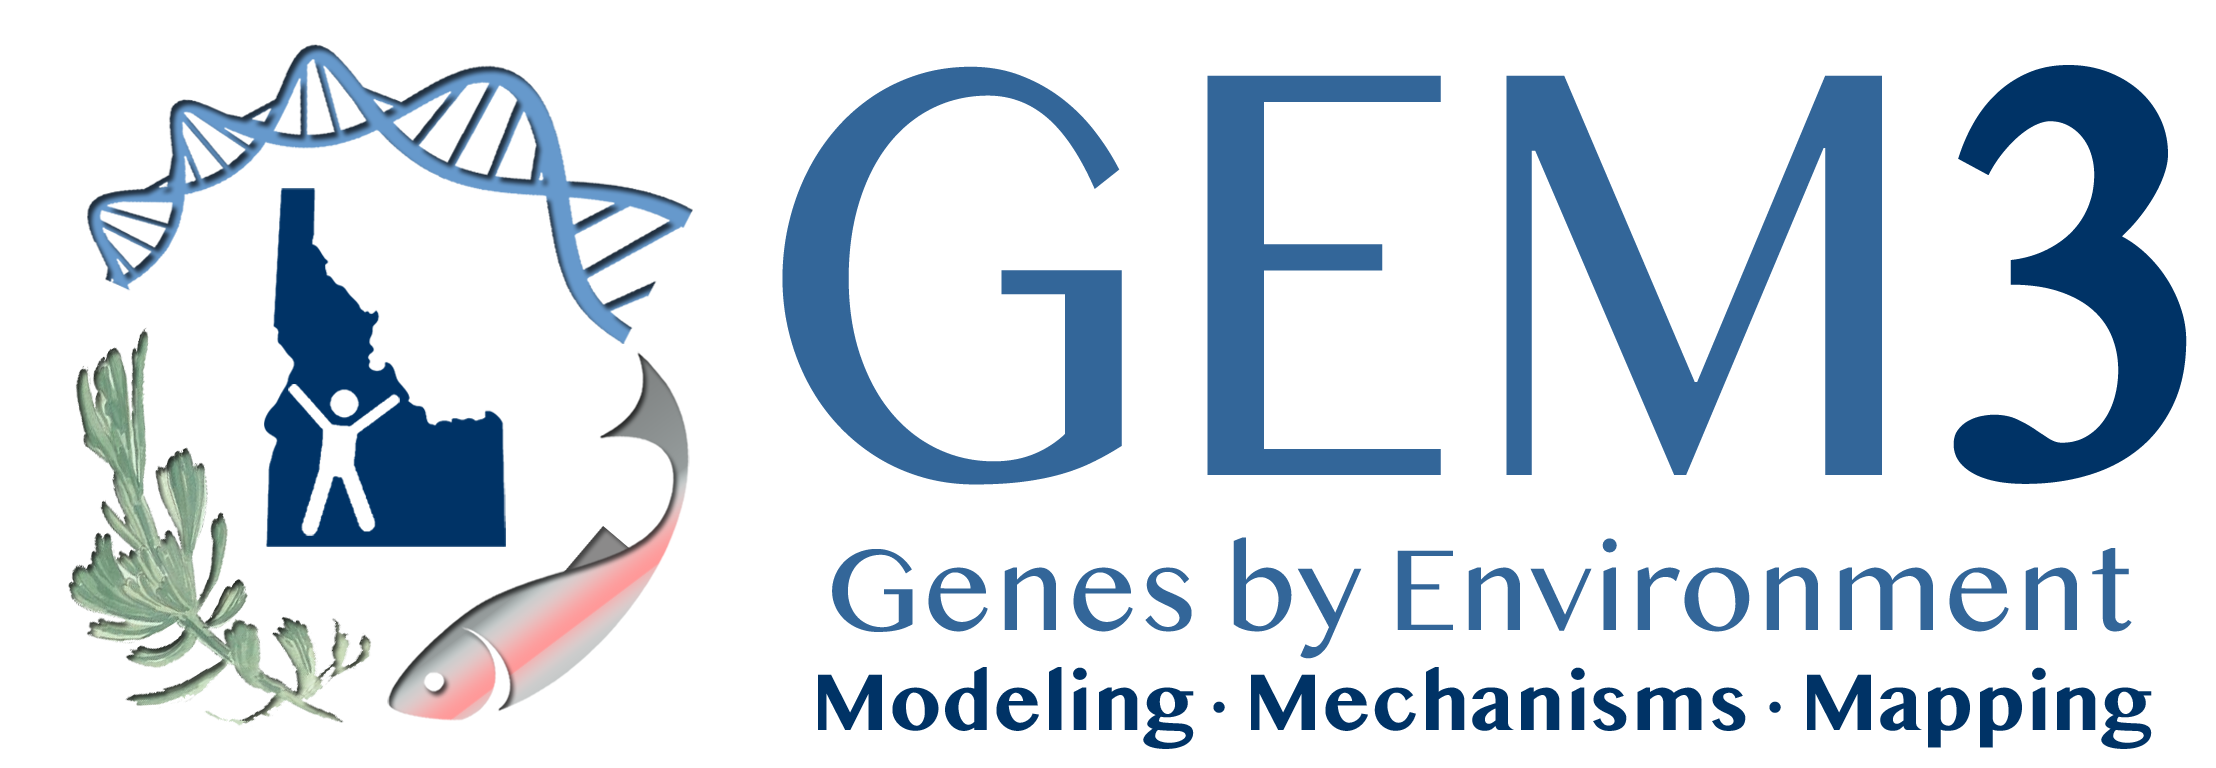 Genes by Environment